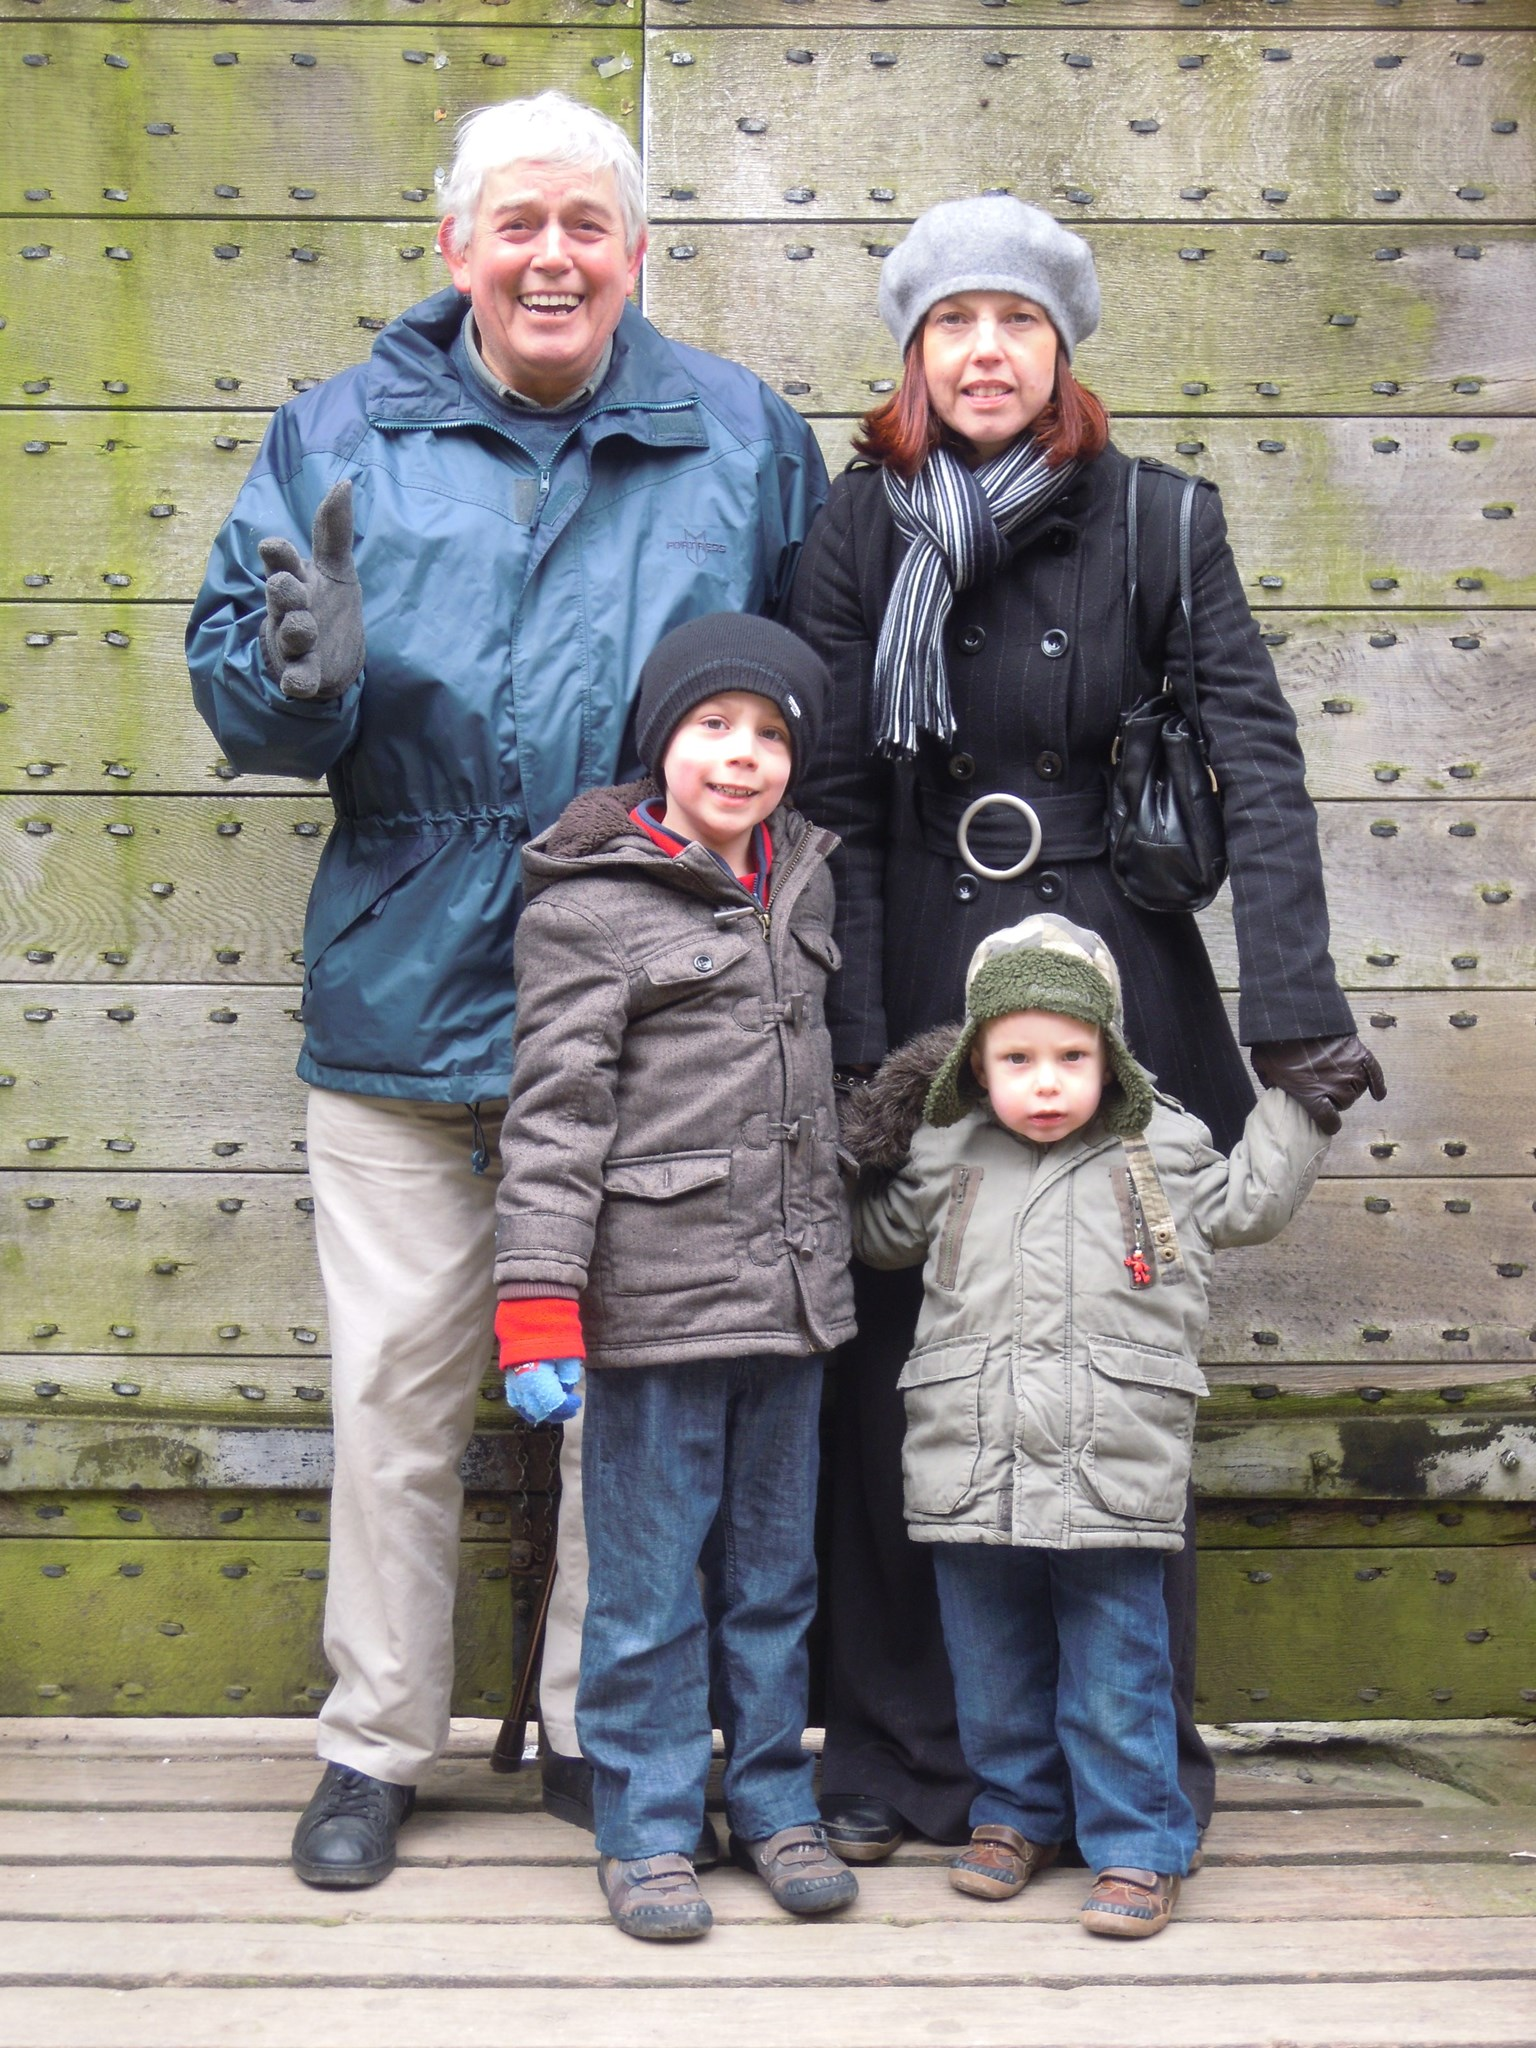 Tony locked in Caerphilly Castle with Clare, Boris and Ivan 2013